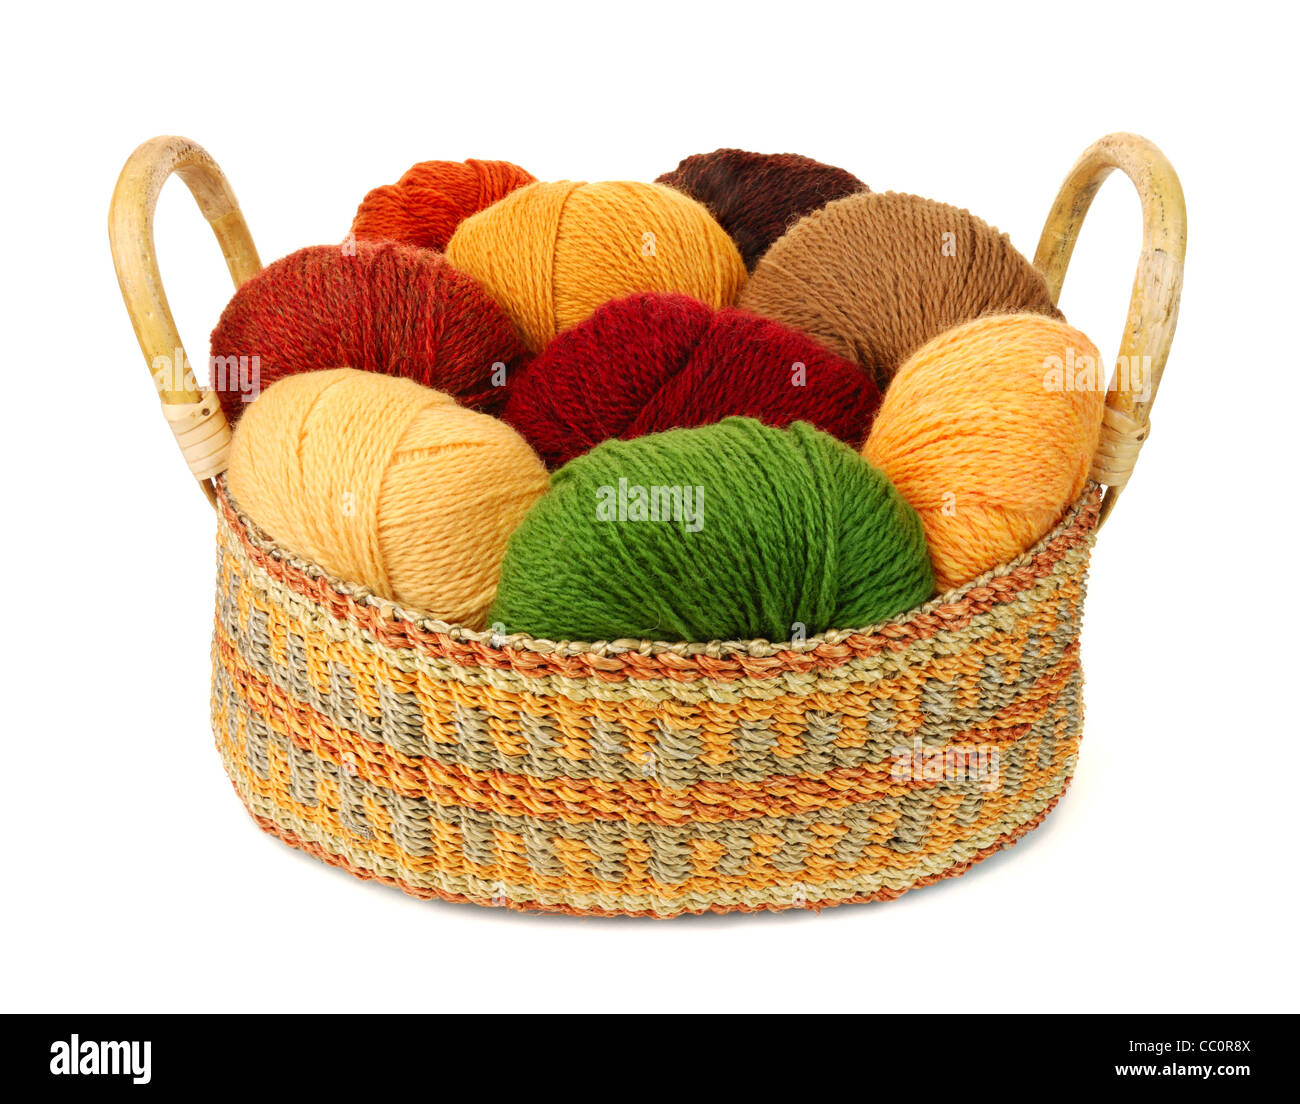 basket of wool yarn from iceland in earth tones - Stock Image